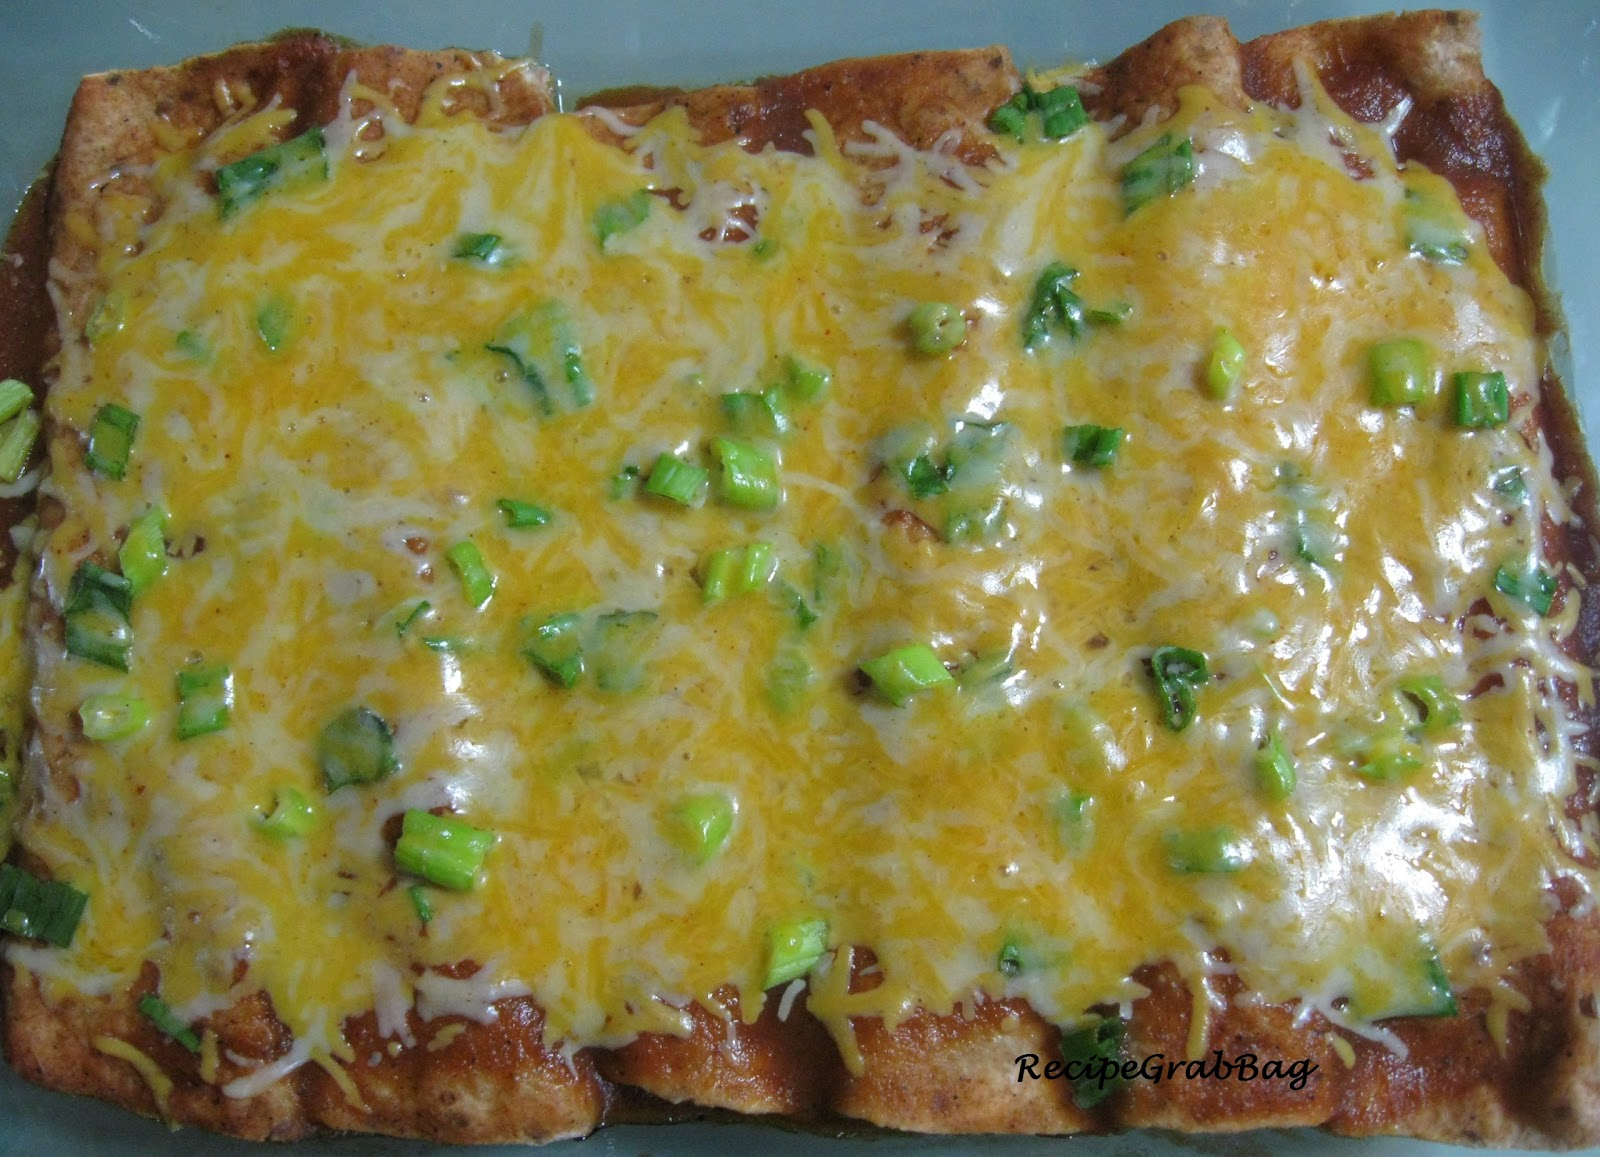 RecipeGrabBag: Quick and Easy Vegetarian Enchiladas